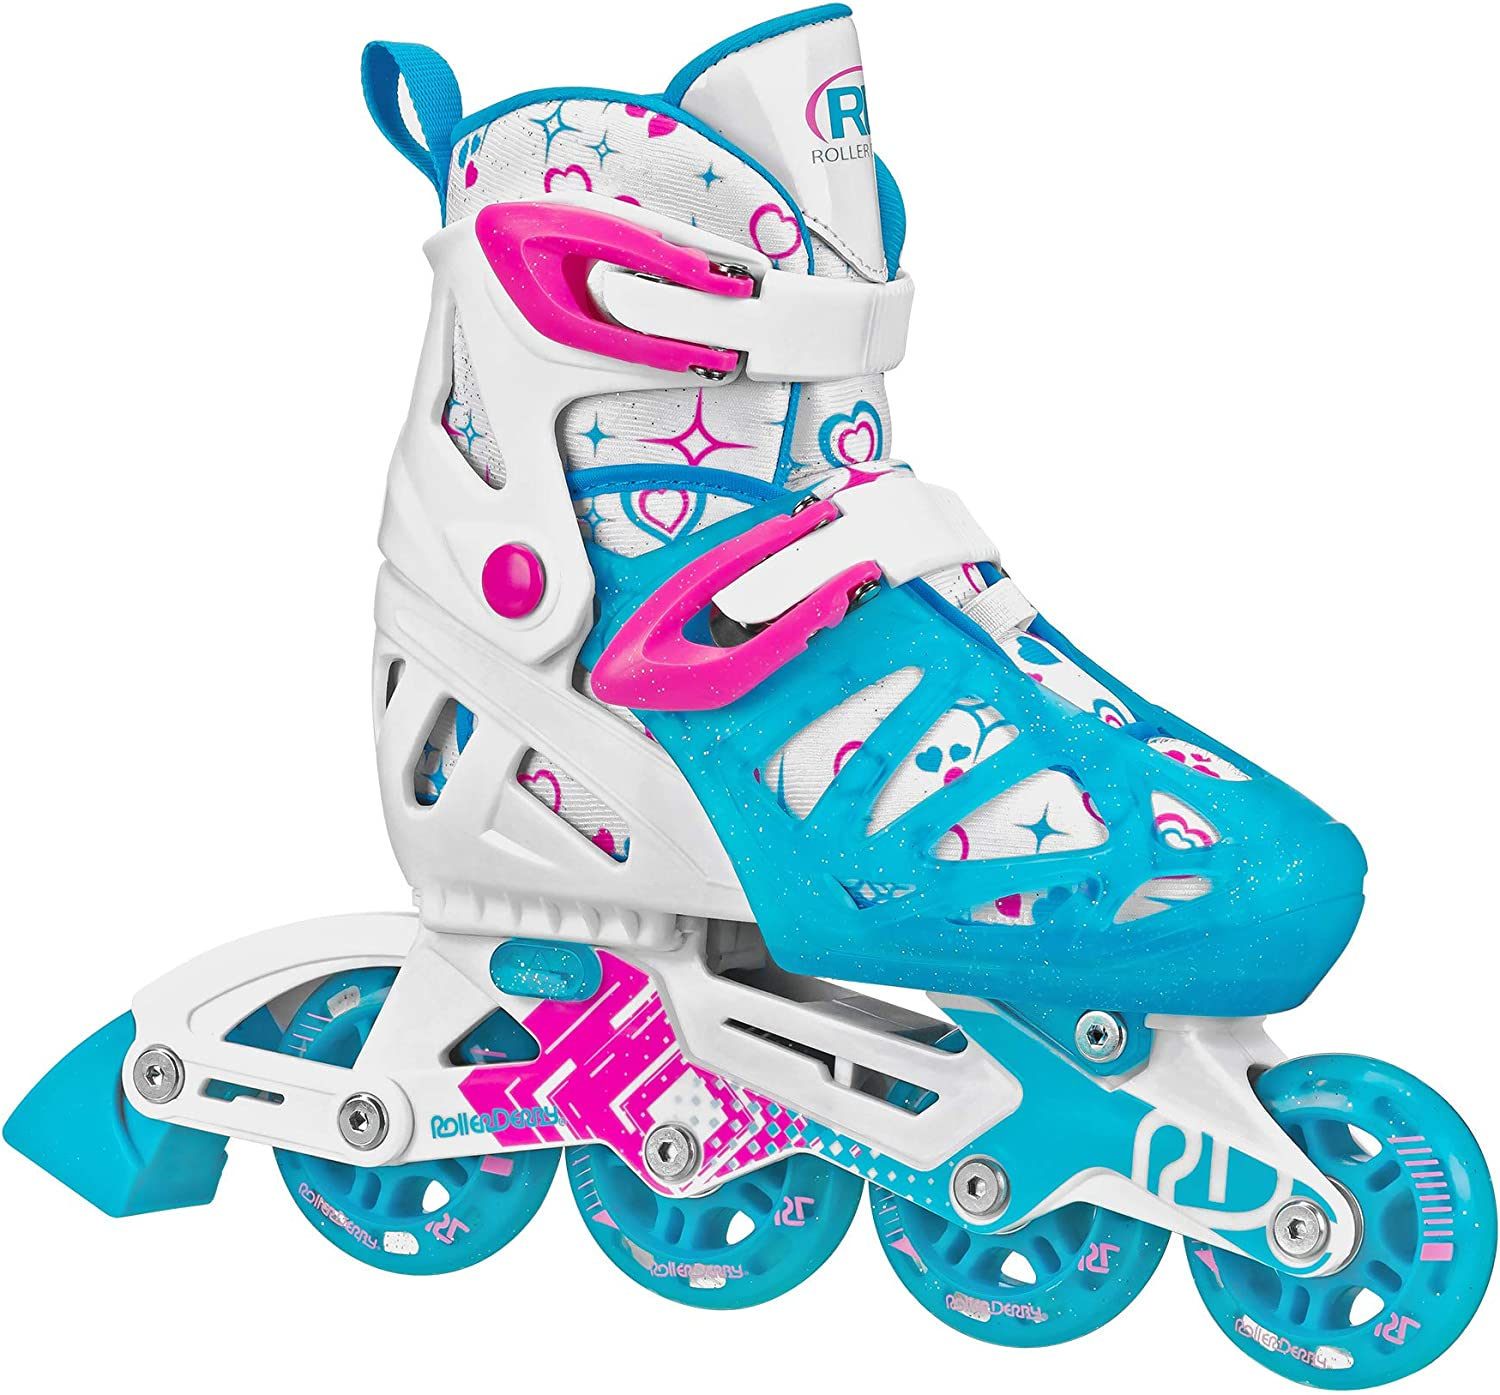 Top 10 Best Inline Skates for Kids (2020 Reviews & Guide) 5